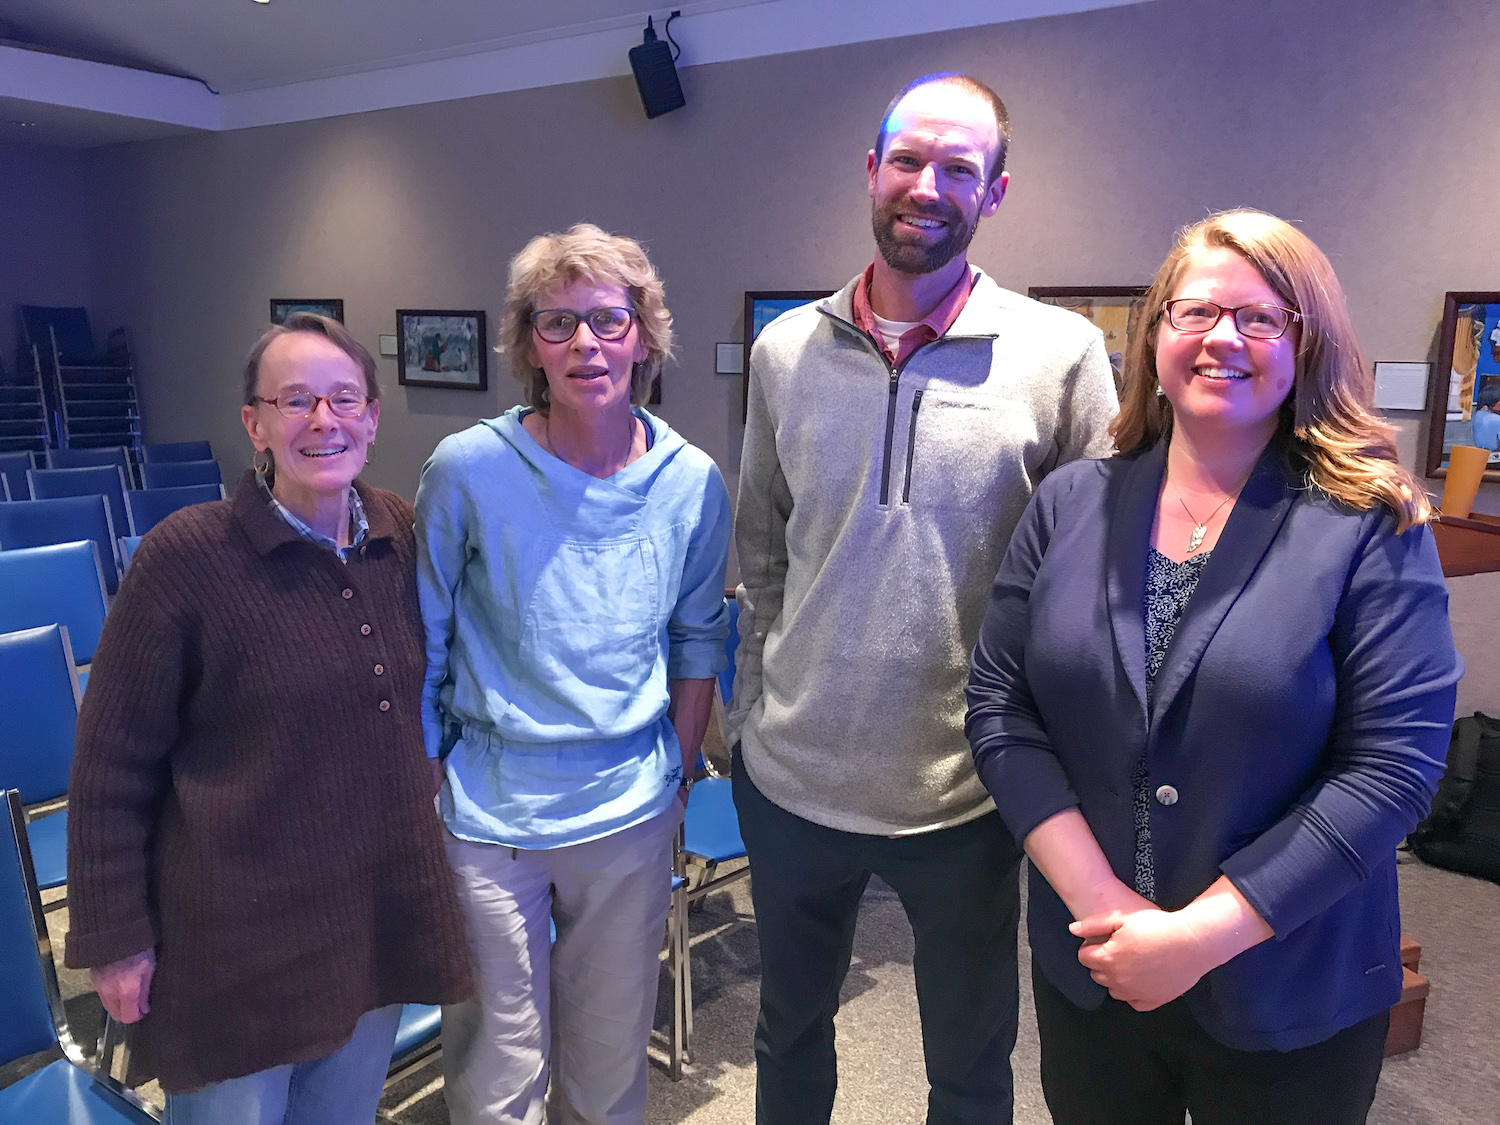 Sue Headley Keller, Co-Chair of the Apostle Islands and Chequamegon Bay Area Community Funds, Bonnie Matuseski, Dr. Cooper, Dr. Johnson